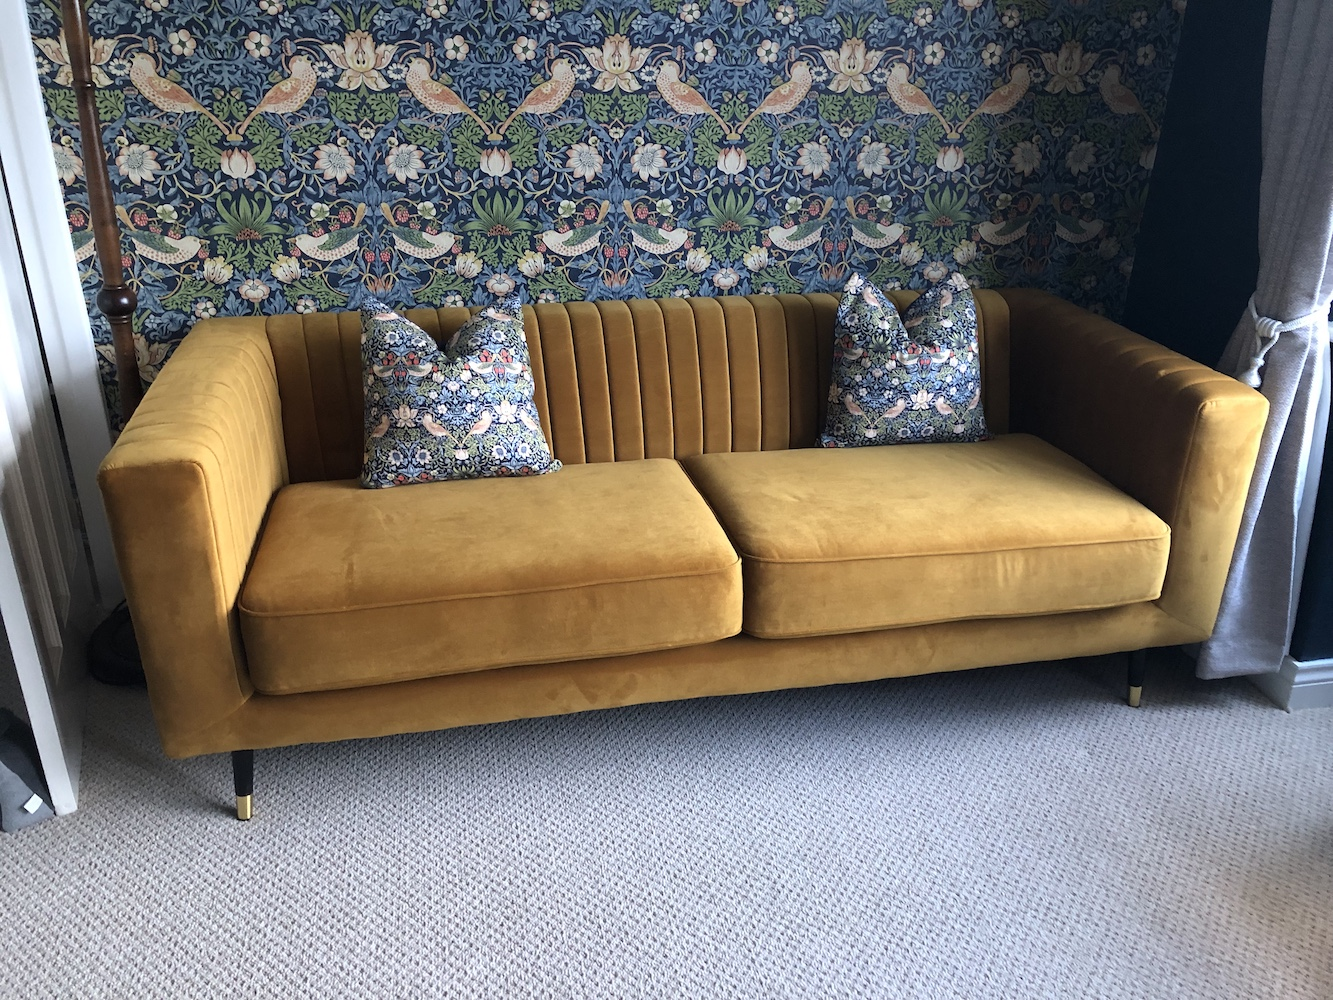 Slender mustard sofa with stitching on the backrest